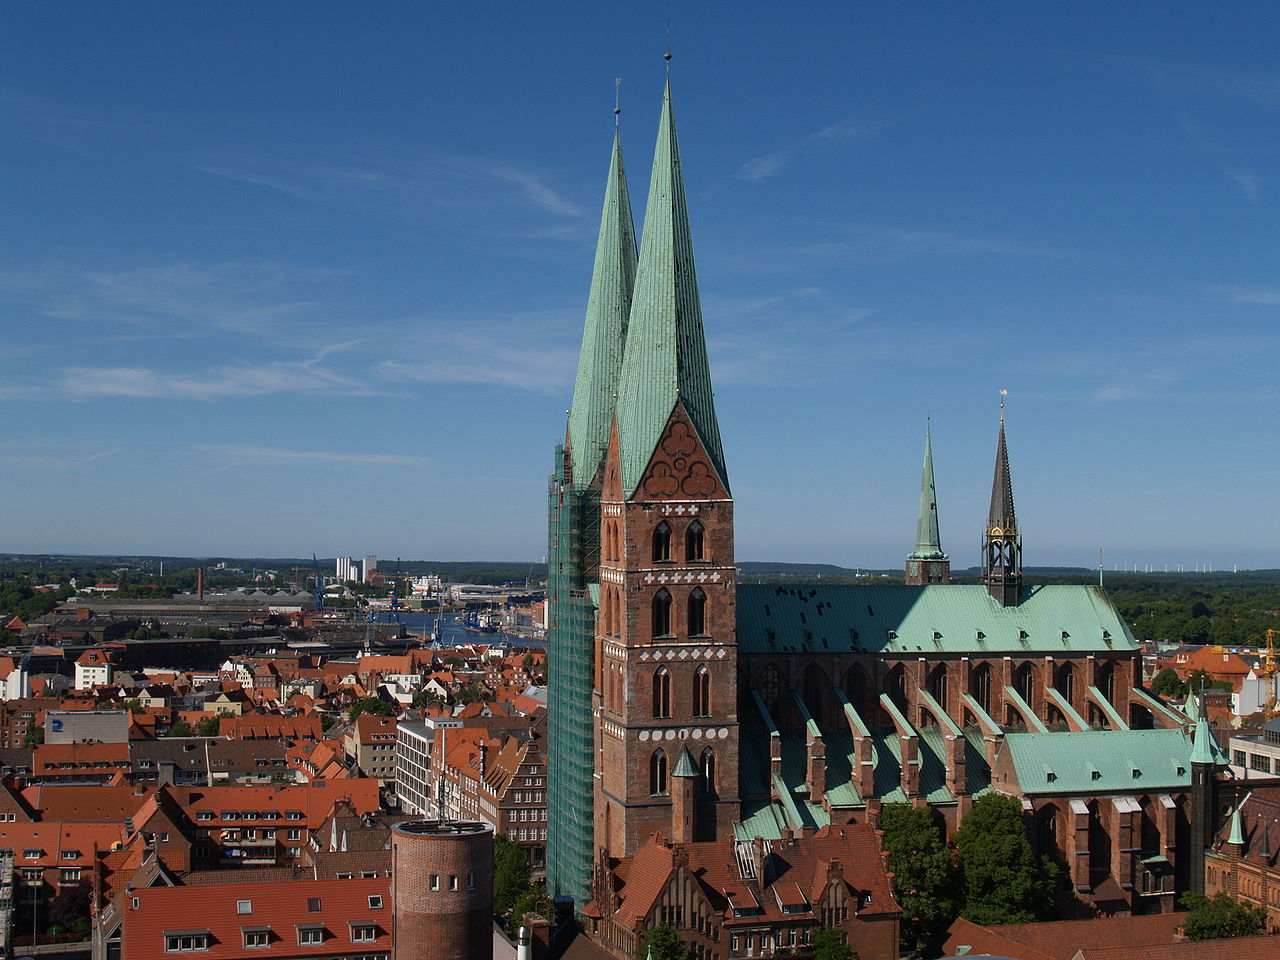 St. Mary's Church, Lubeck, Germany